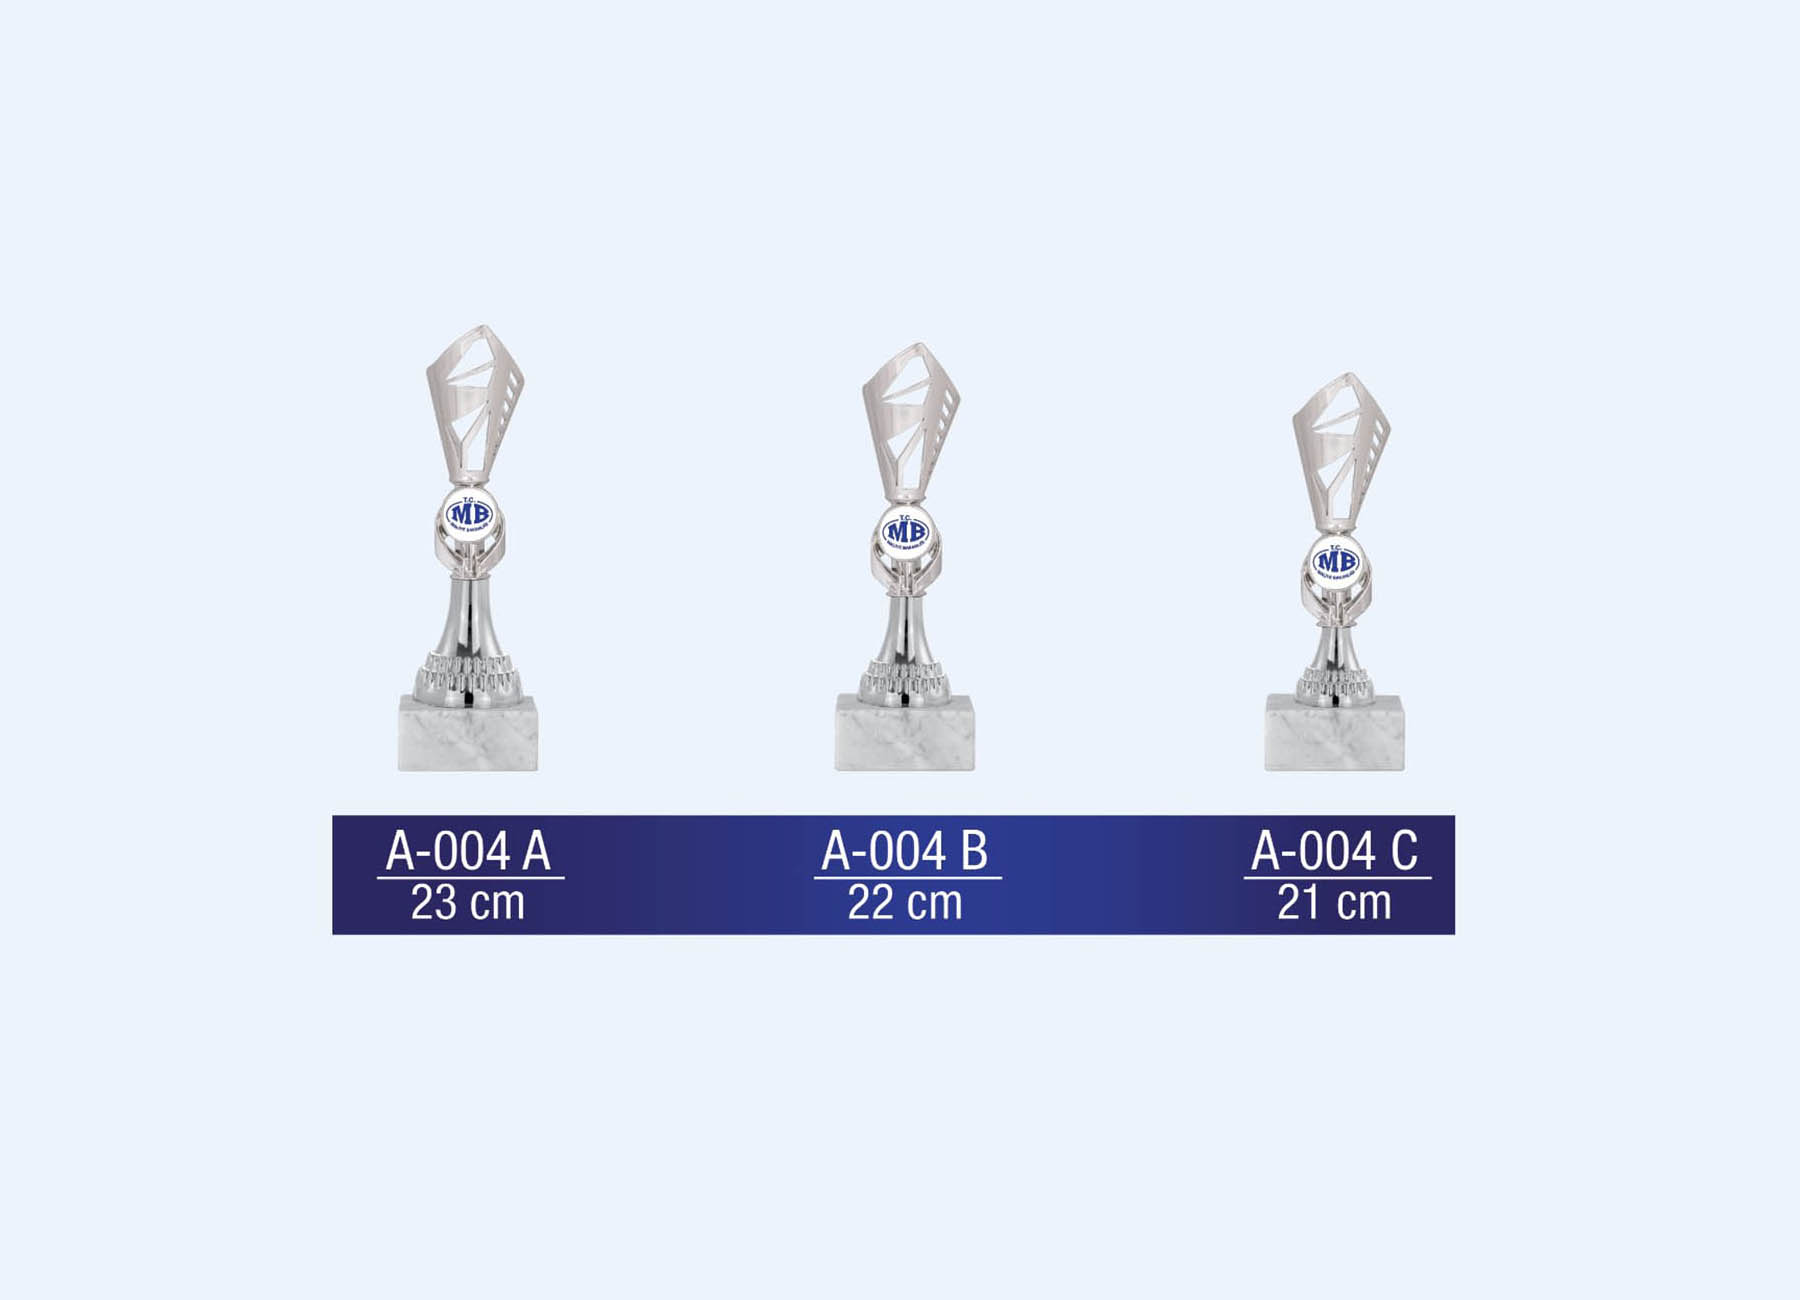 A-004 General Cups